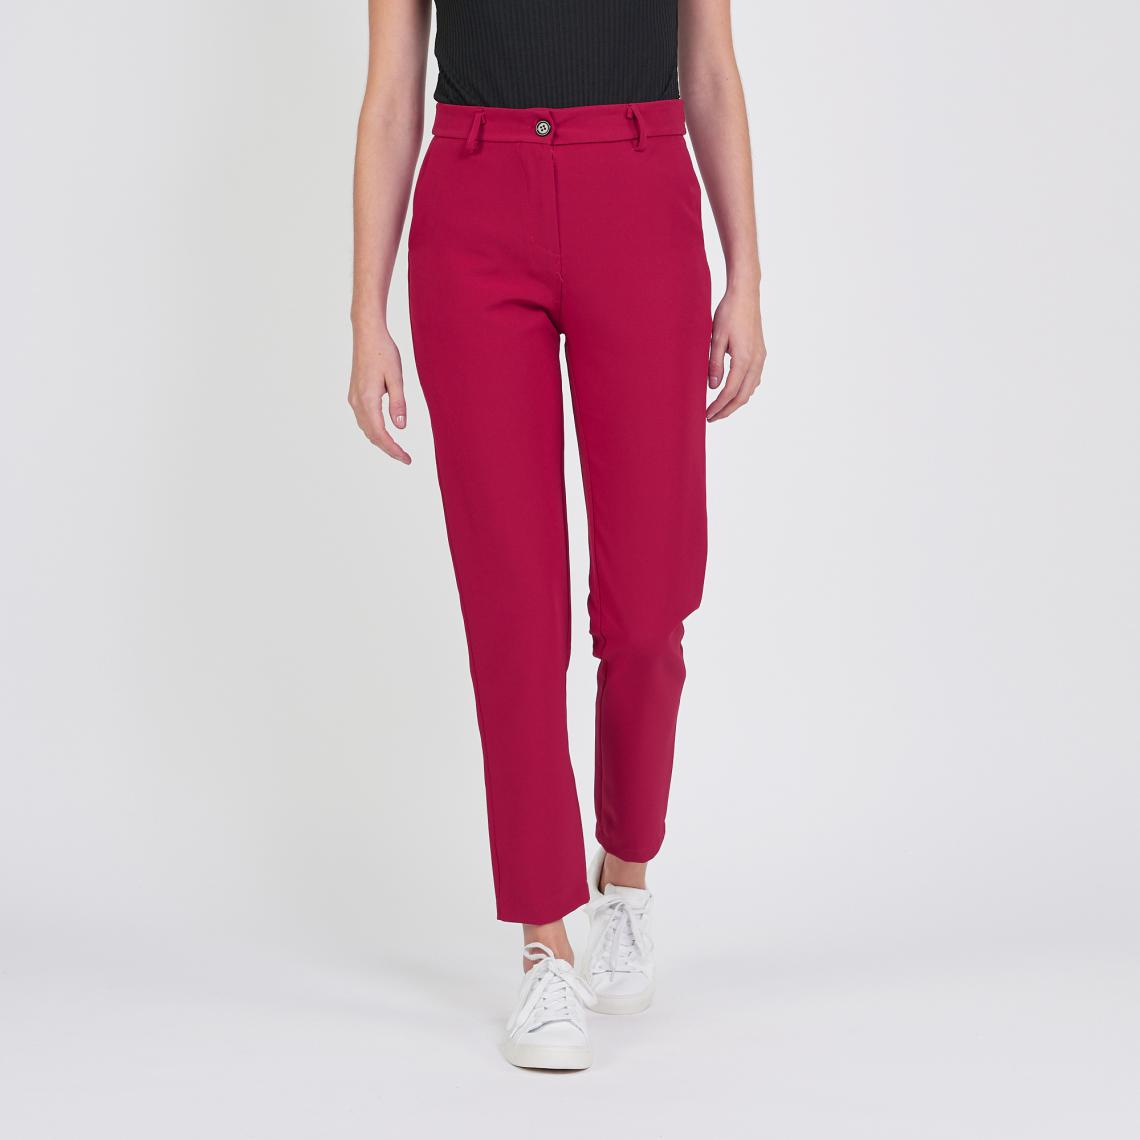 Pantalon tailleur droit rouge Billy | 3 SUISSES